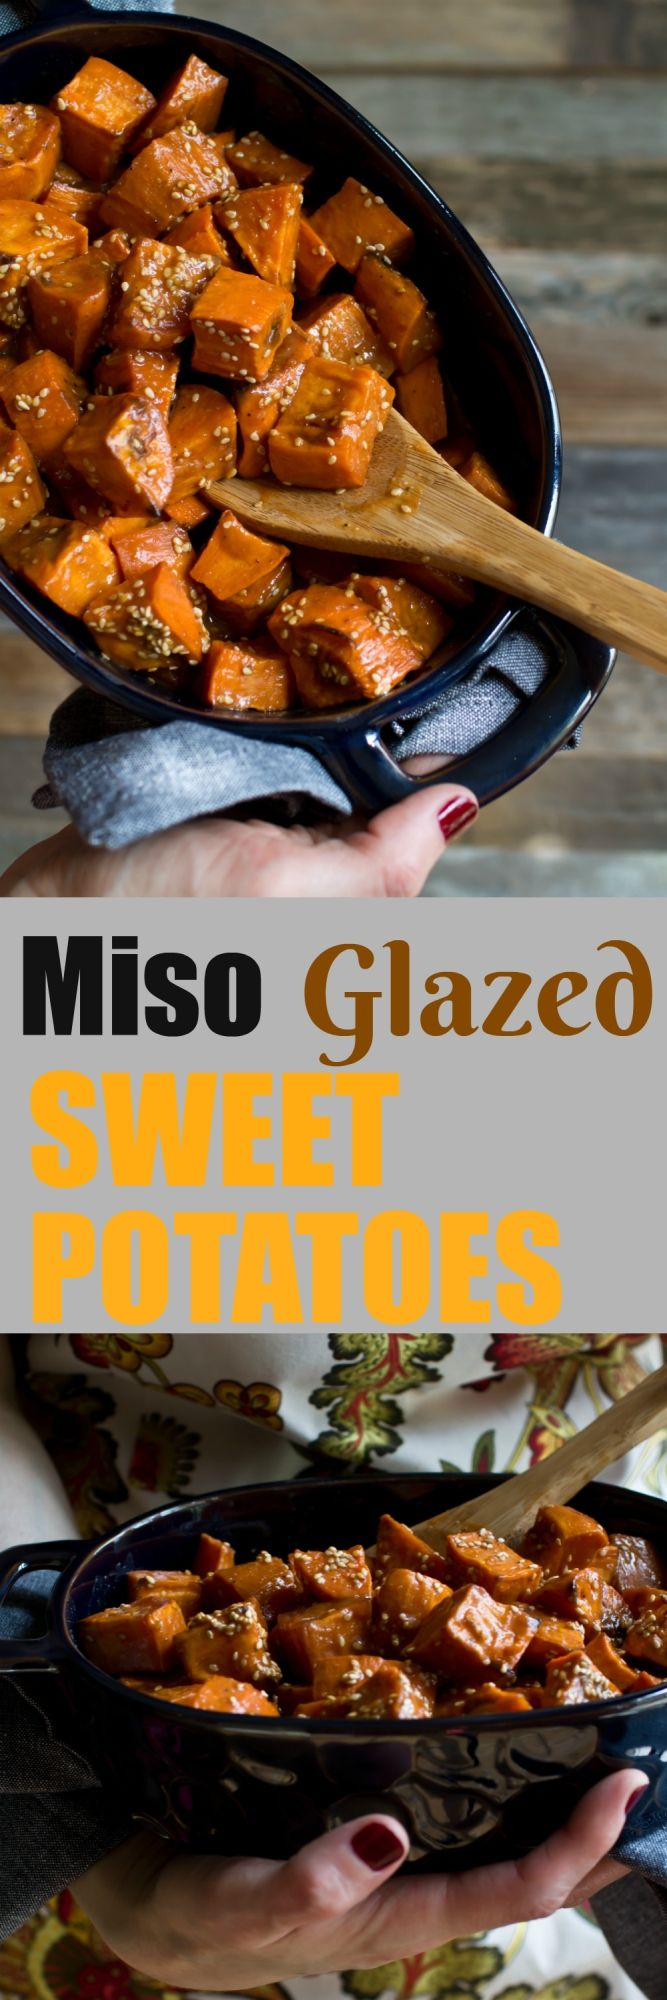 These Miso Glazed Sweet Potatoes are inspired by the True Food Ancient Grains bowl. These are easy to make, are sweet, salty, tangy and with a kick of heat. Bonus that my version is oil-free! via @thevegan8